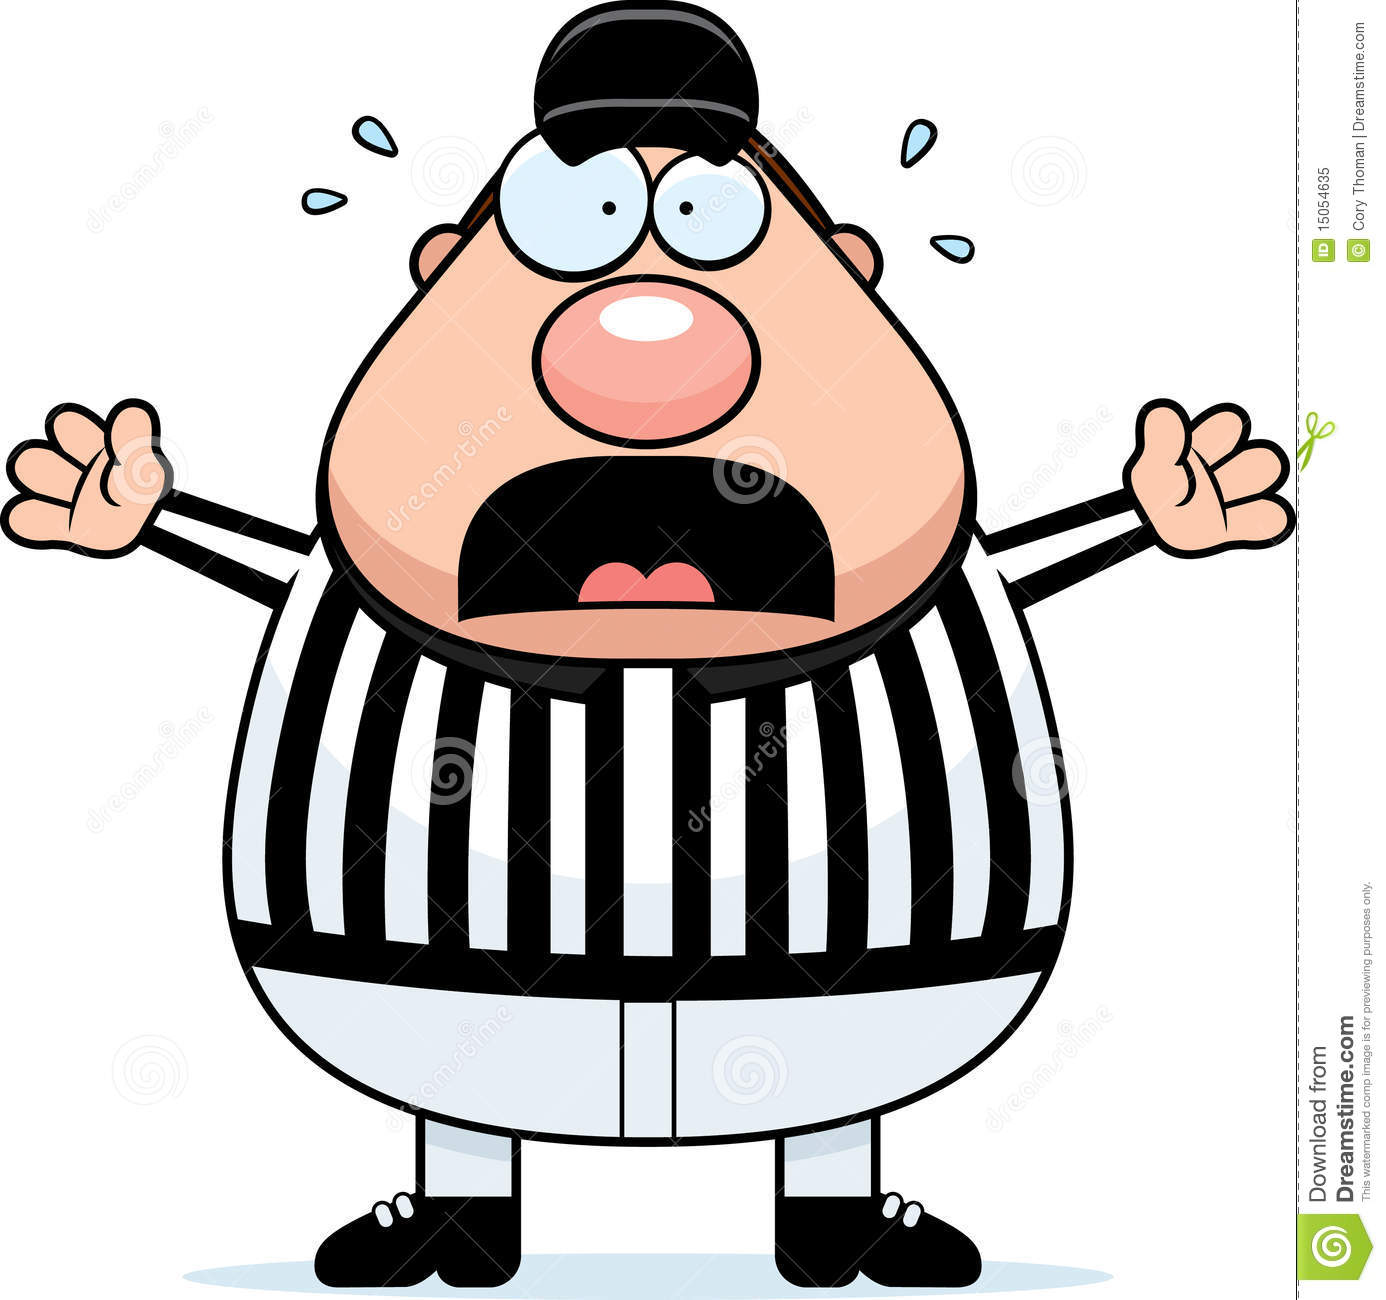 471 Referee free clipart.